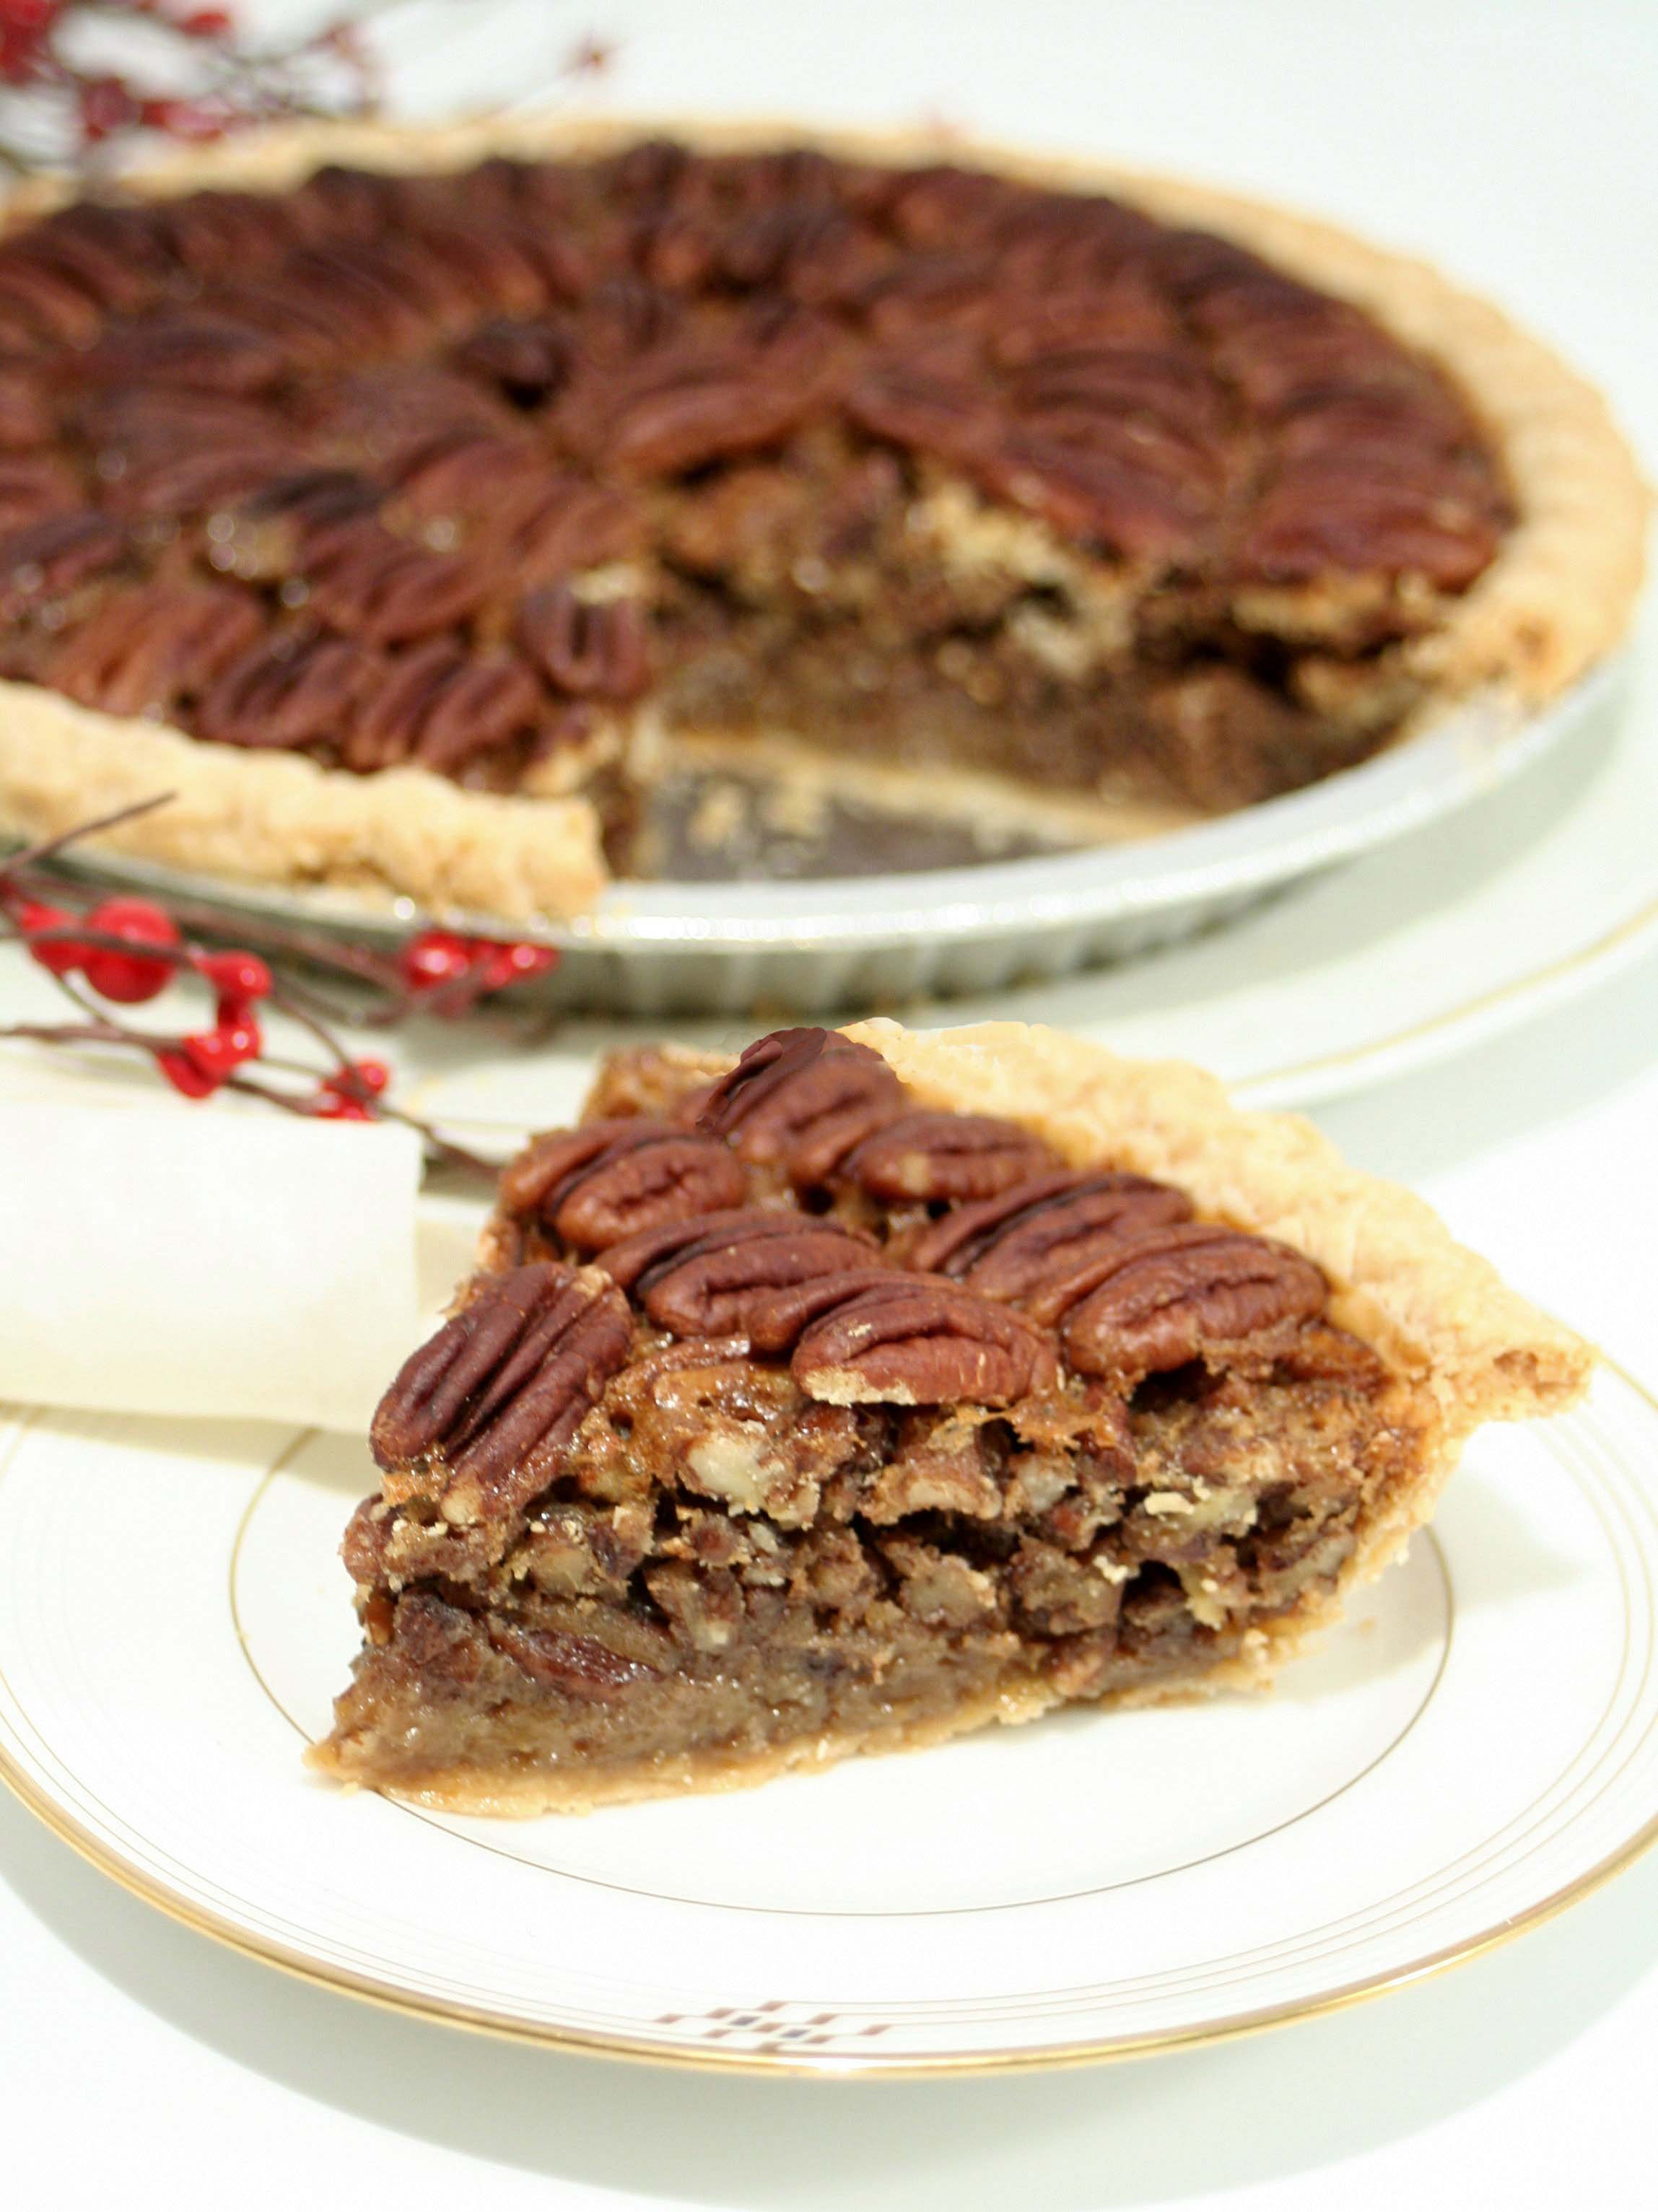 Aunt Bonnie's Pecan Pie: 10 Desserts With Nuts Recipes For Those Nuts For Desserts | Cheap Is The New Classy